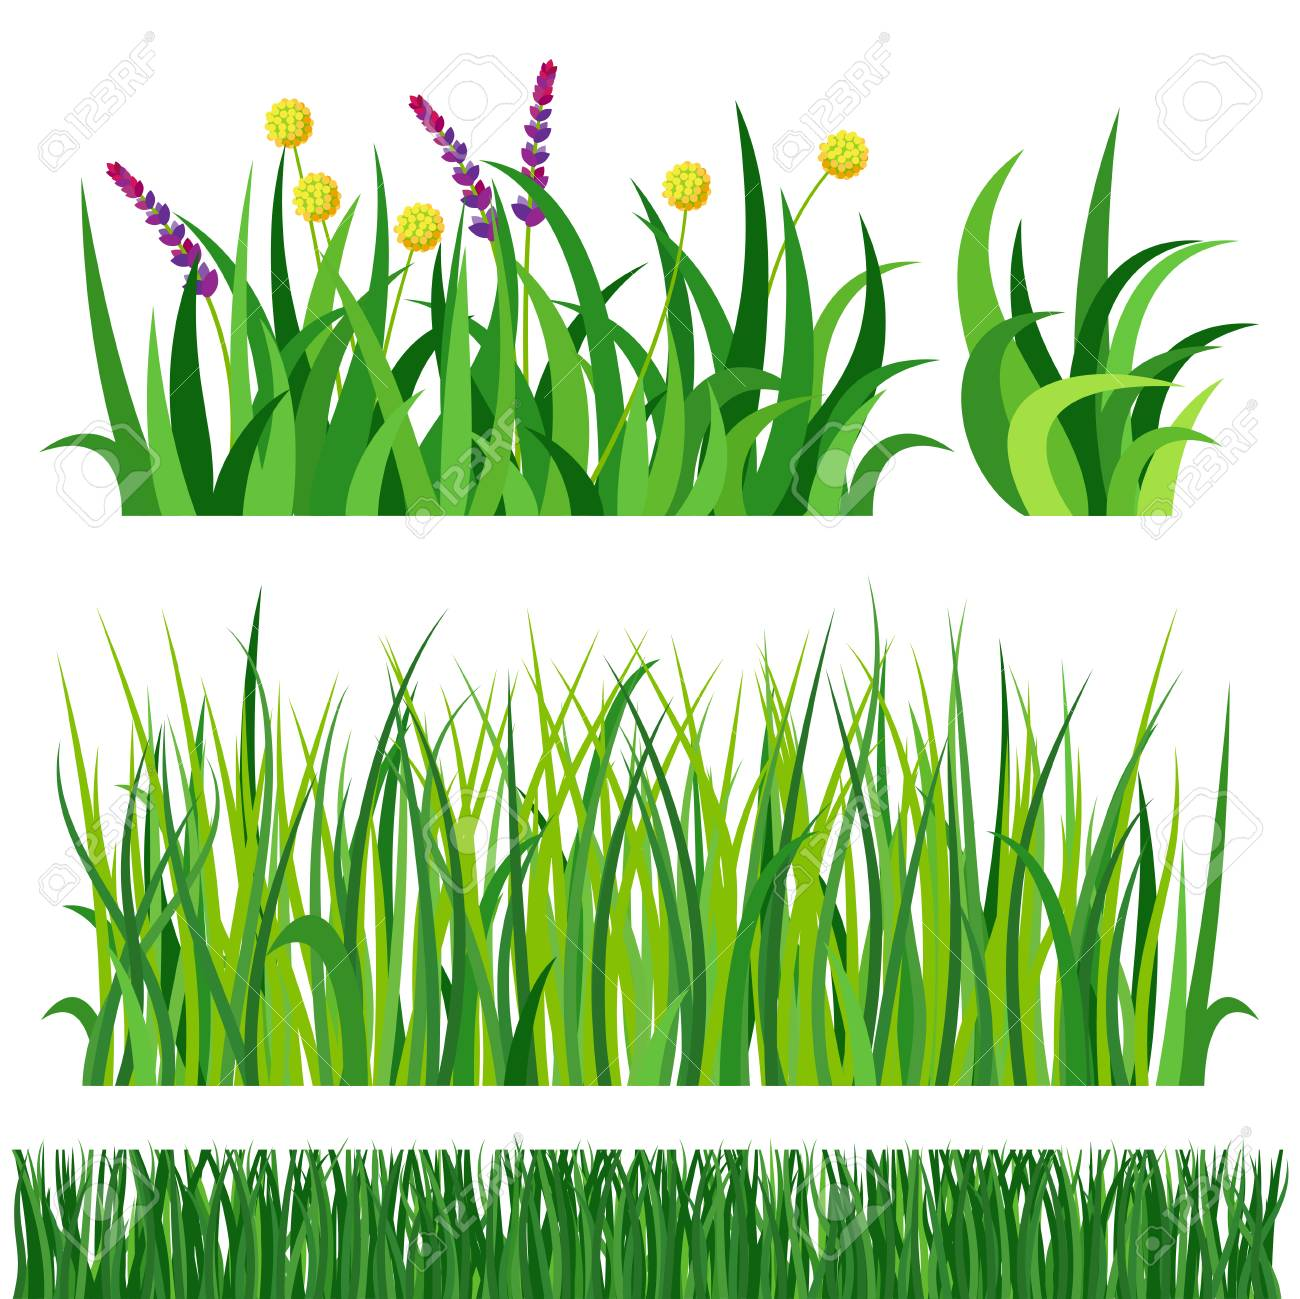 green grass nature design elements vector illustration isolated rh 123rf com grass vector to raster grass vector intersect